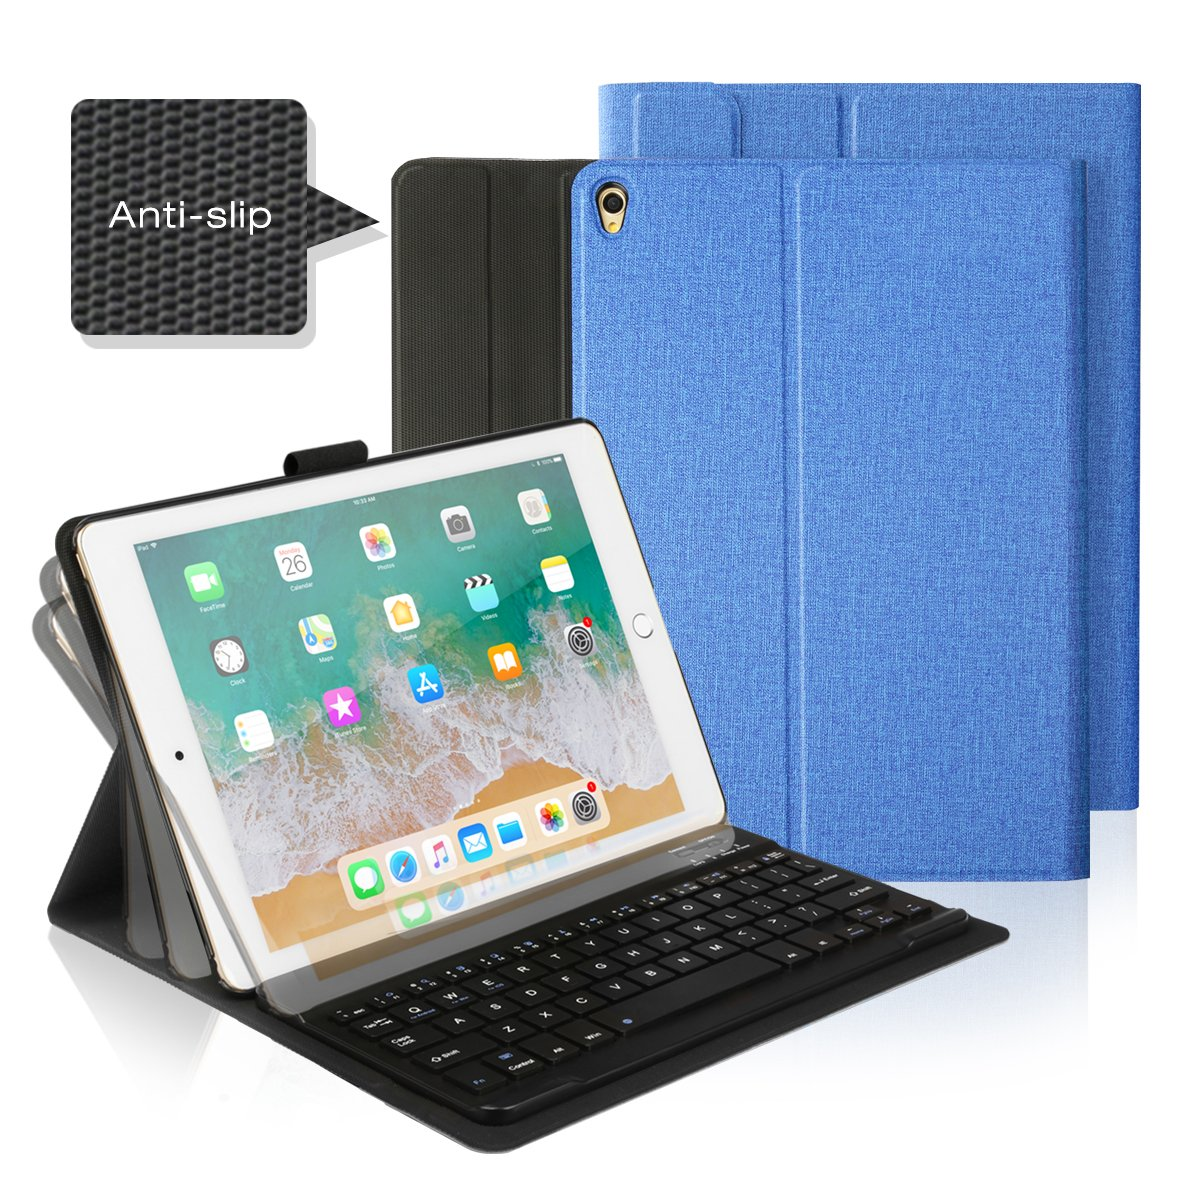 AntArt 10.5 Leather case + Wireless Bluetooth American English ABS Brushed Keyboard for iOS, Android Windows